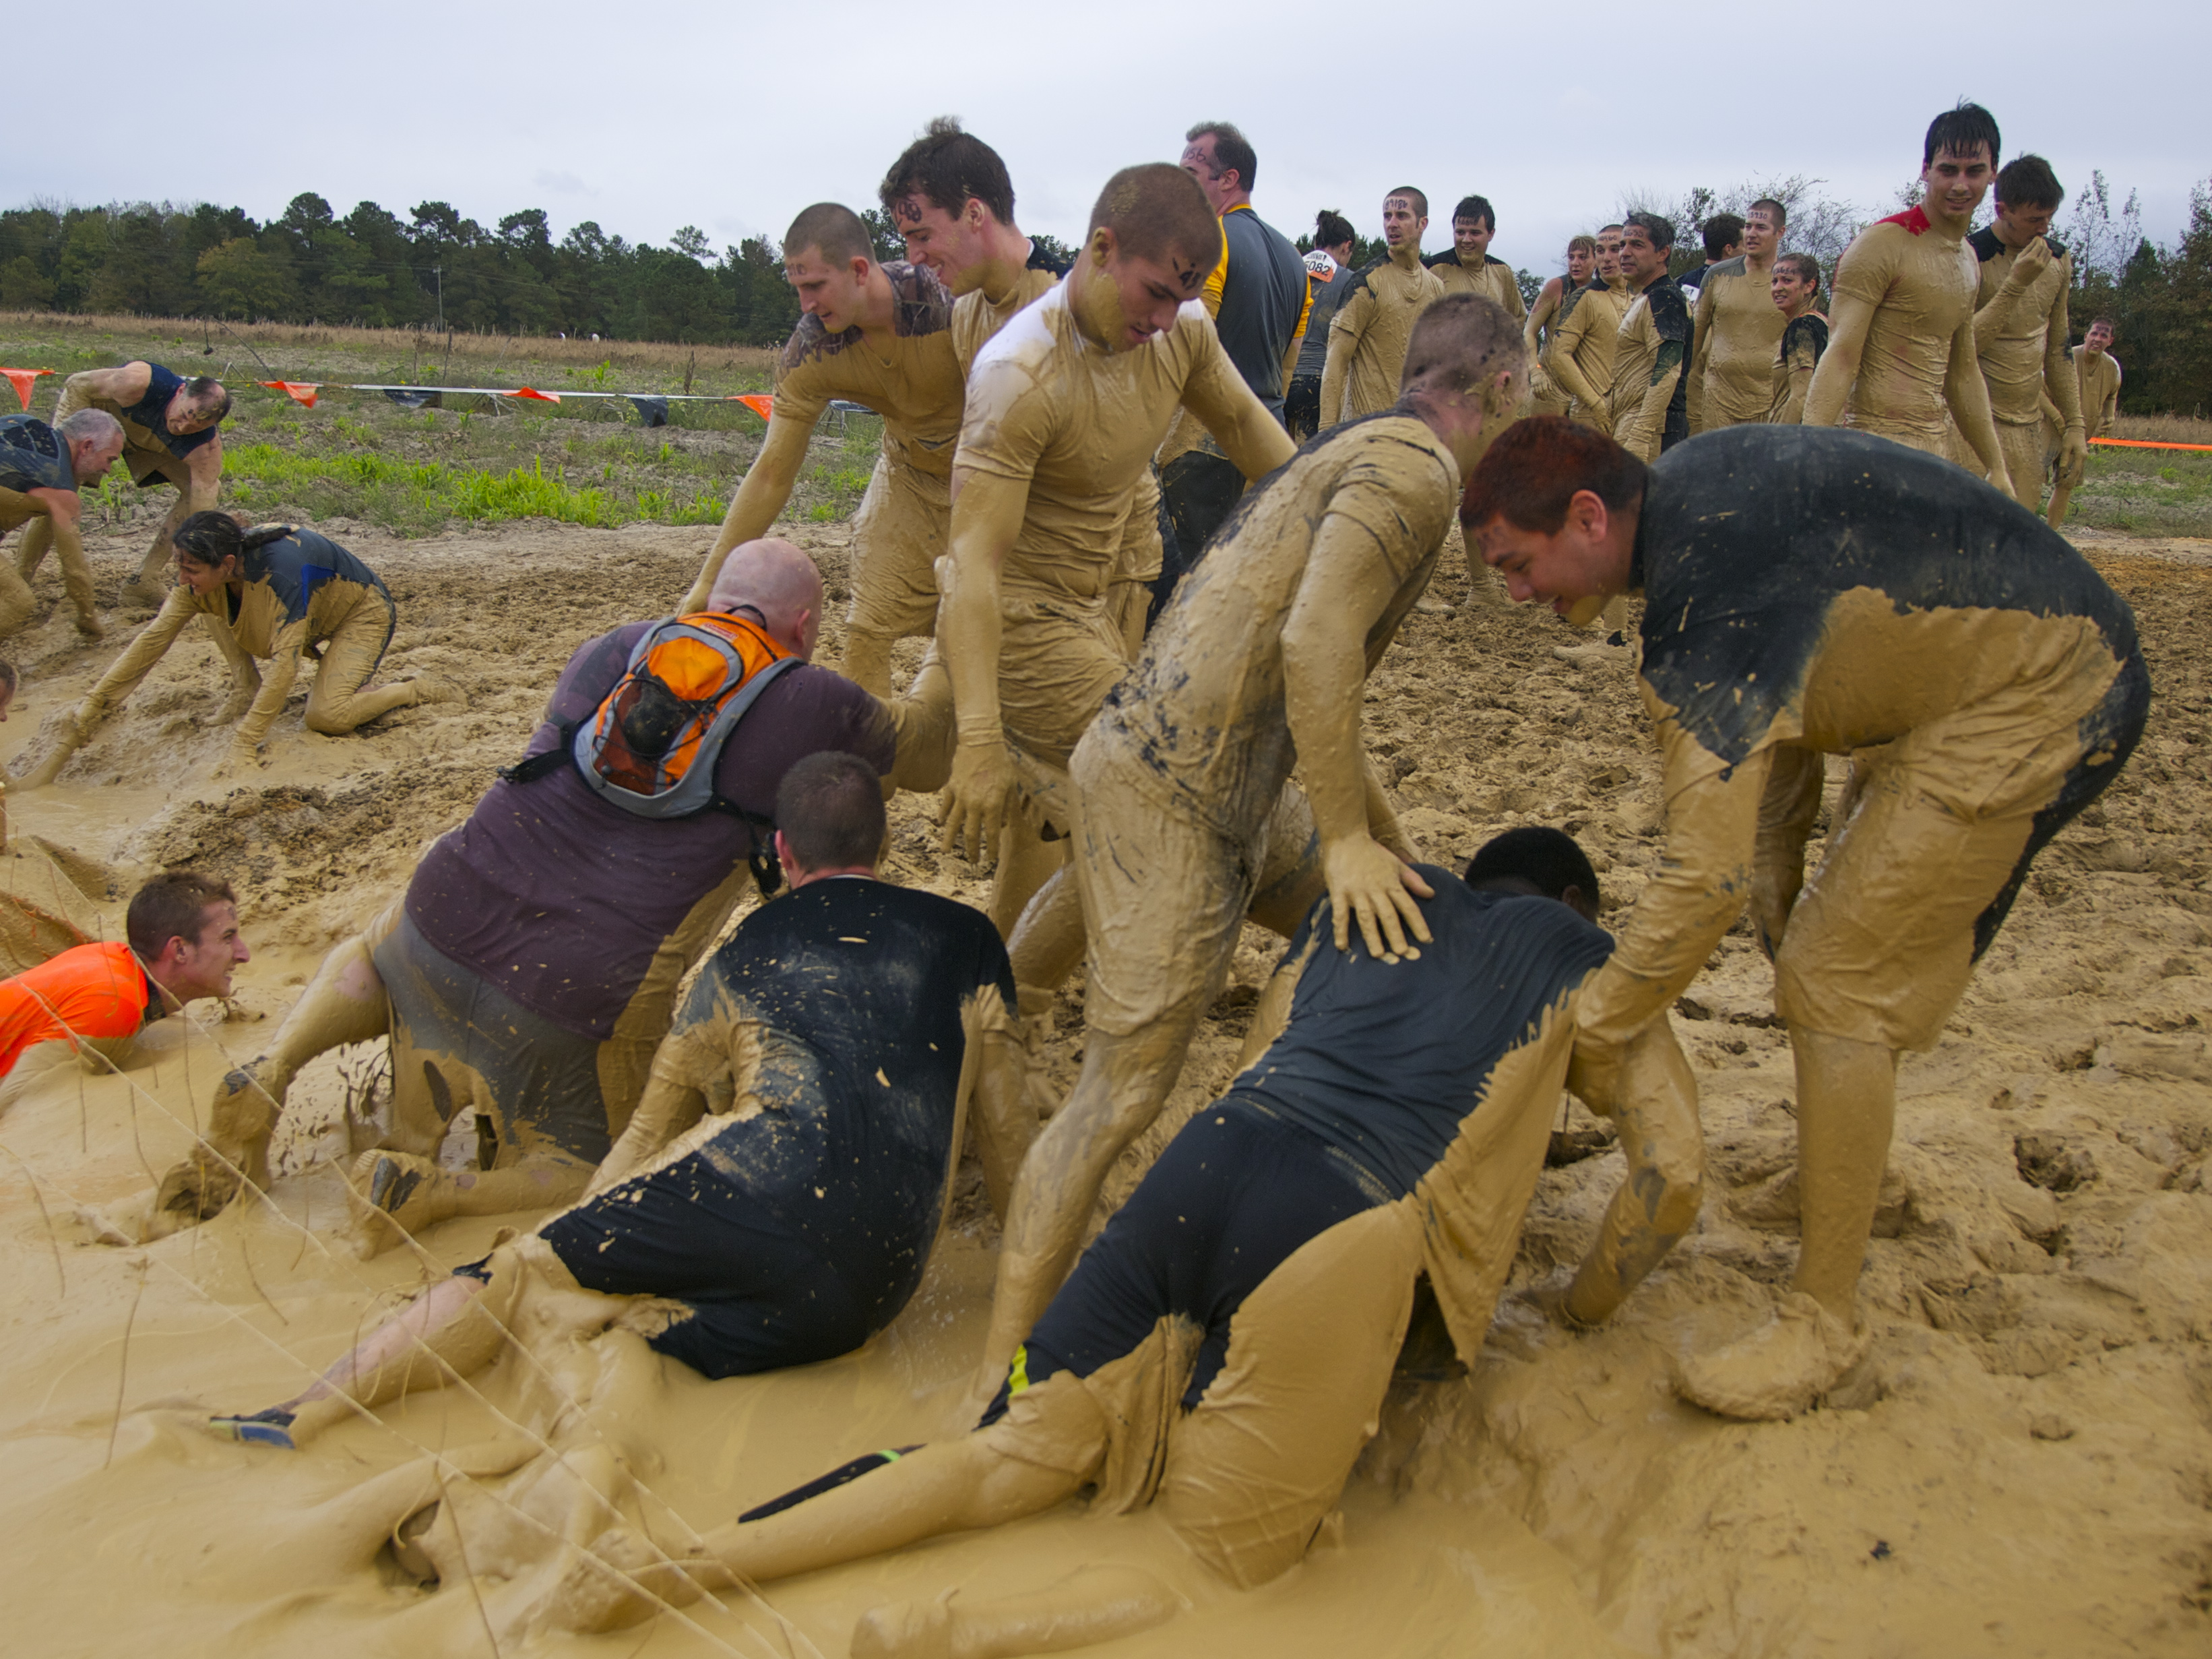 Tough Mudders emerging from the Electric Eel. The toughest race on Earth ...